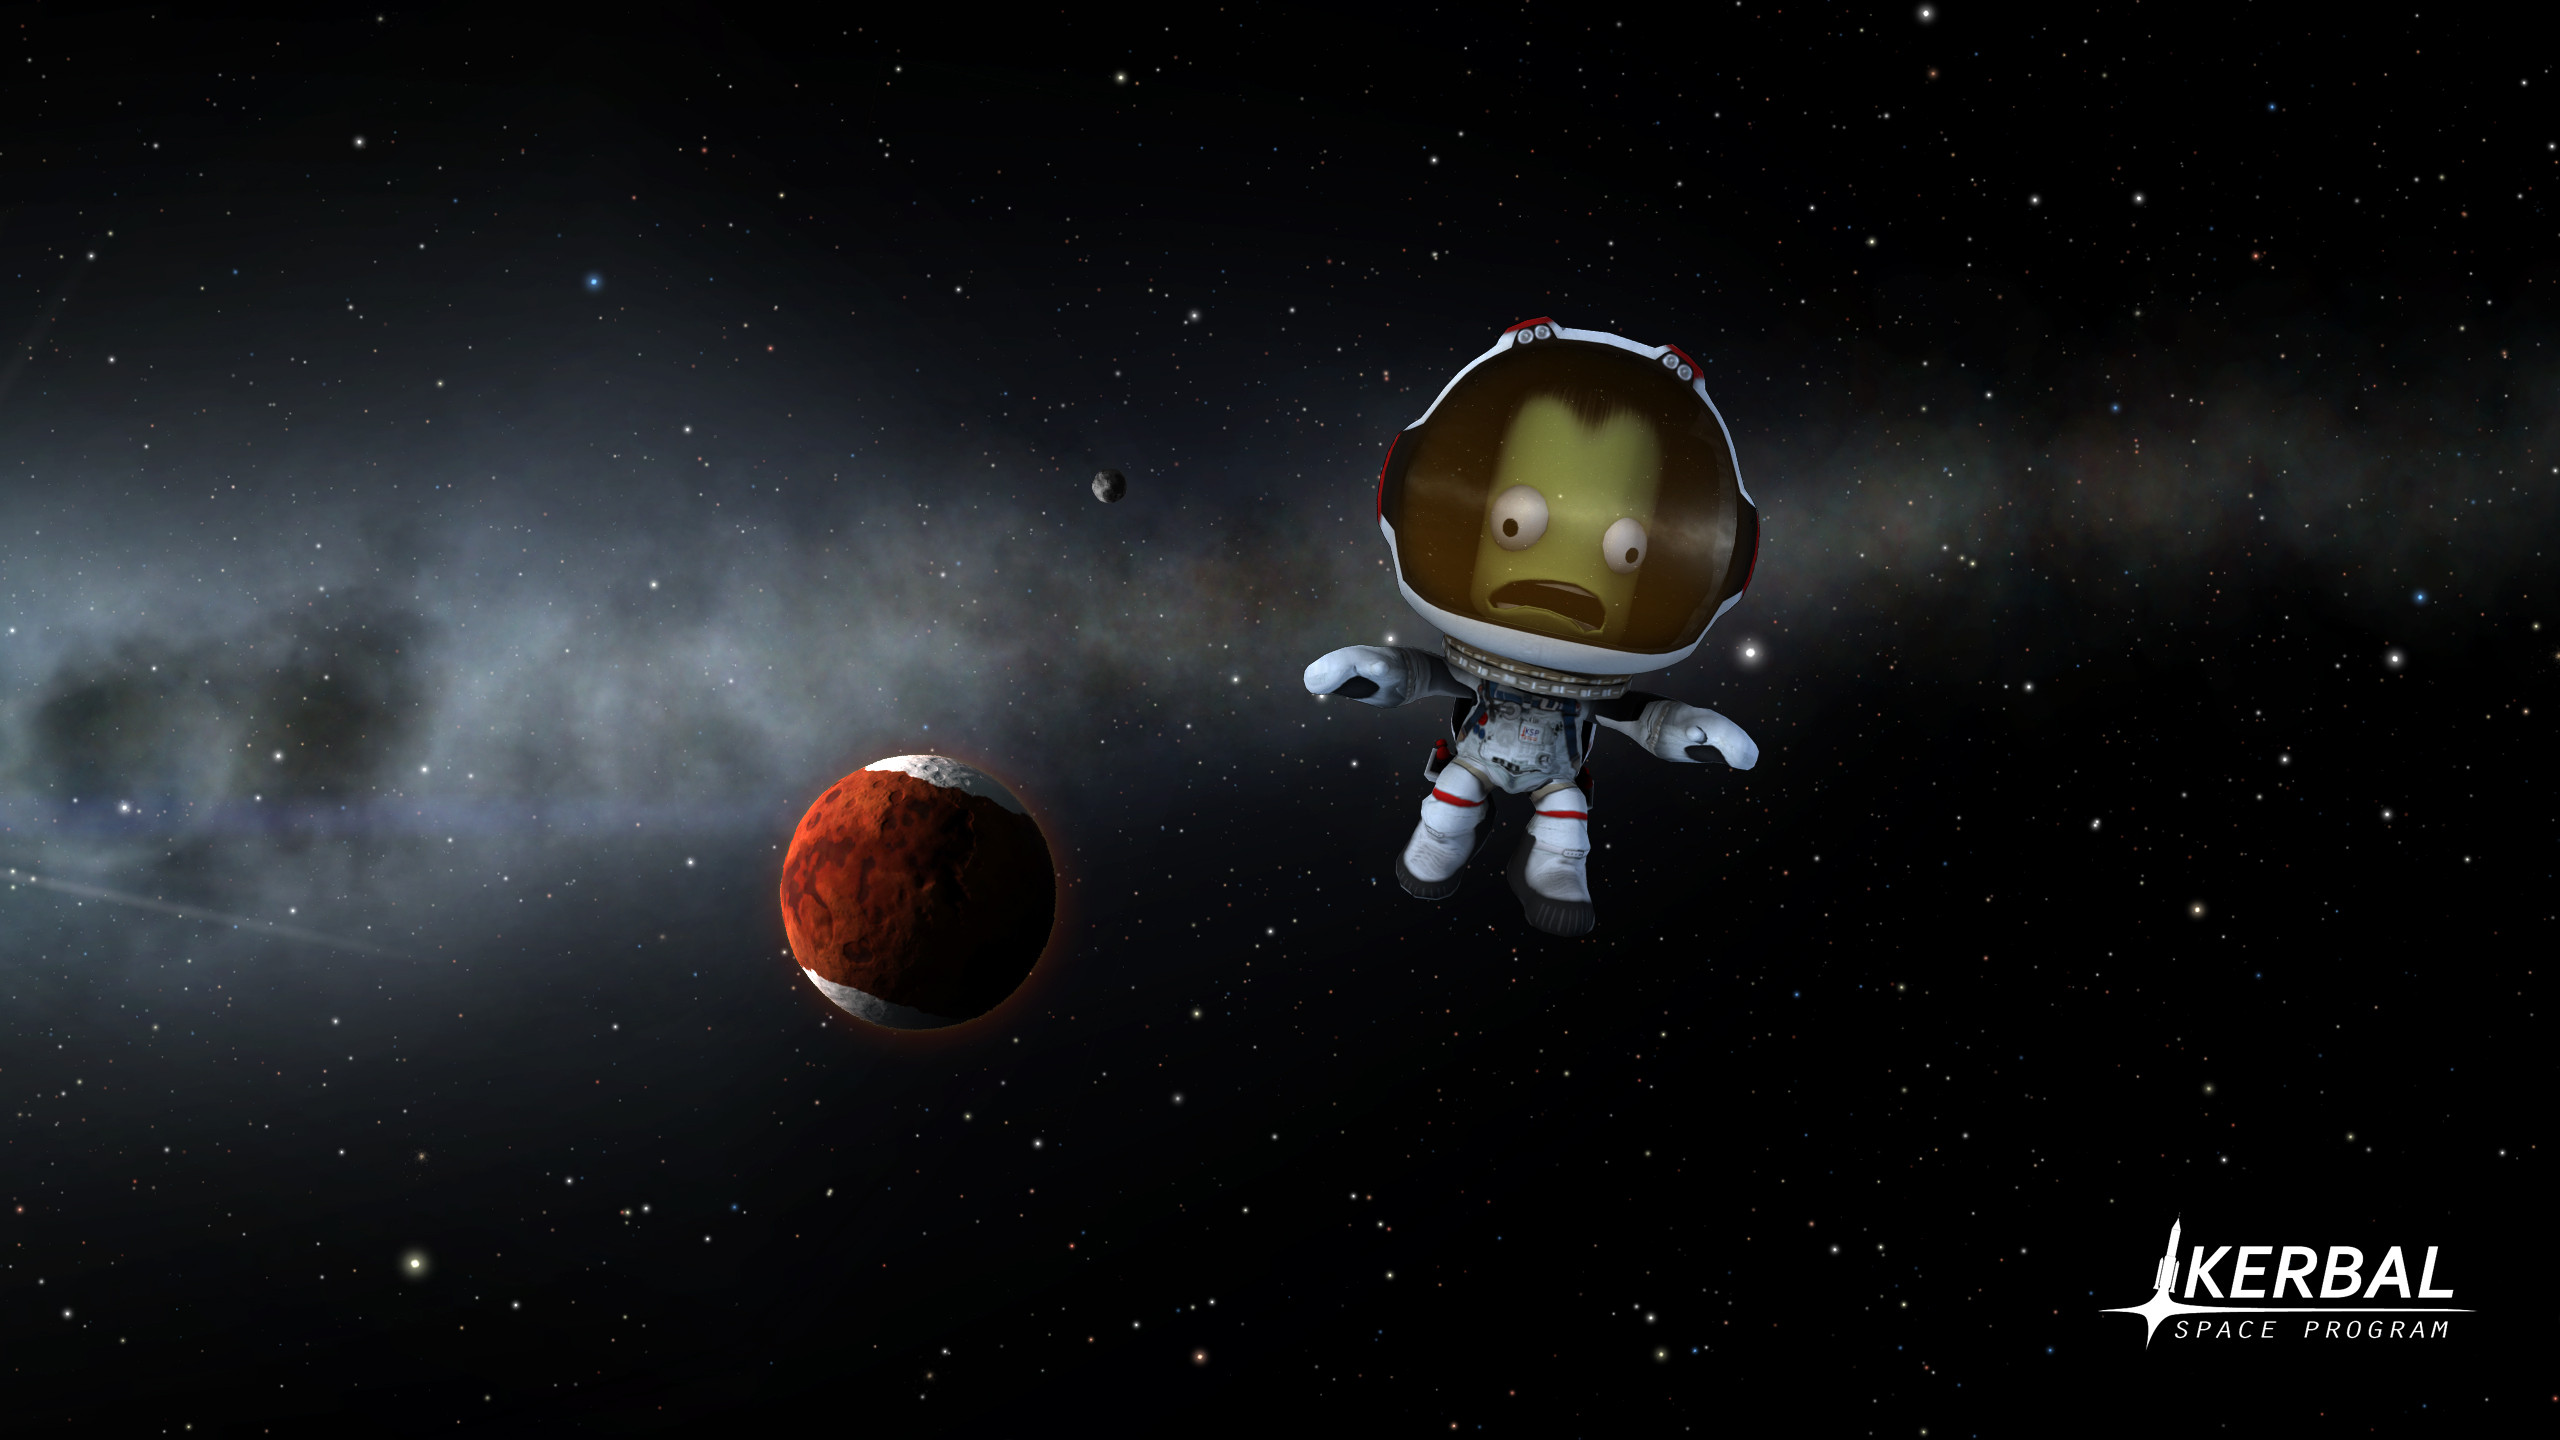 Kerbal Space Program Apk Download For Android